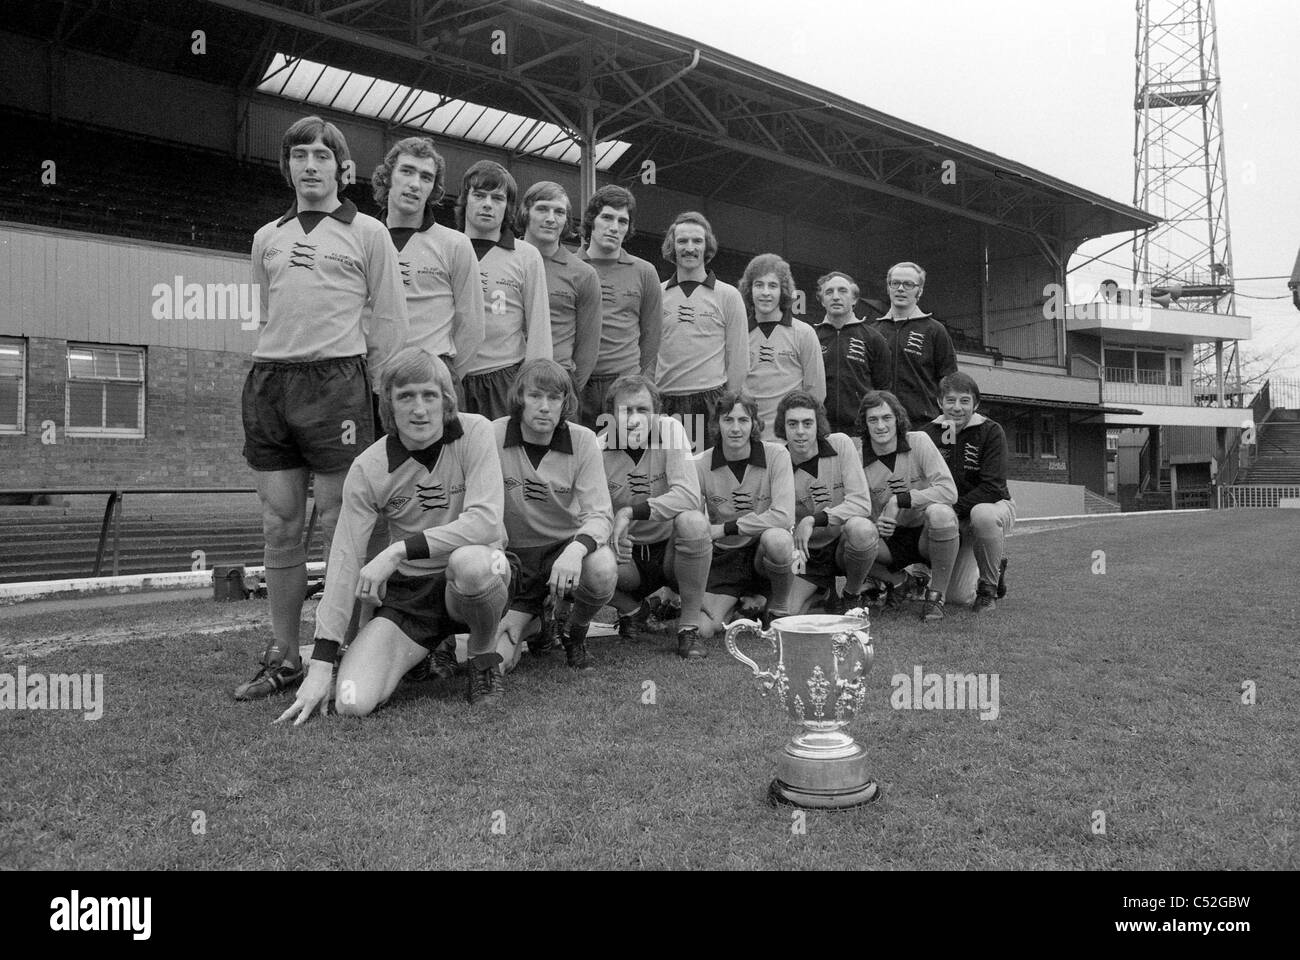 Wolverhampton Wanderers football team with League Cup 1975 - Stock Image